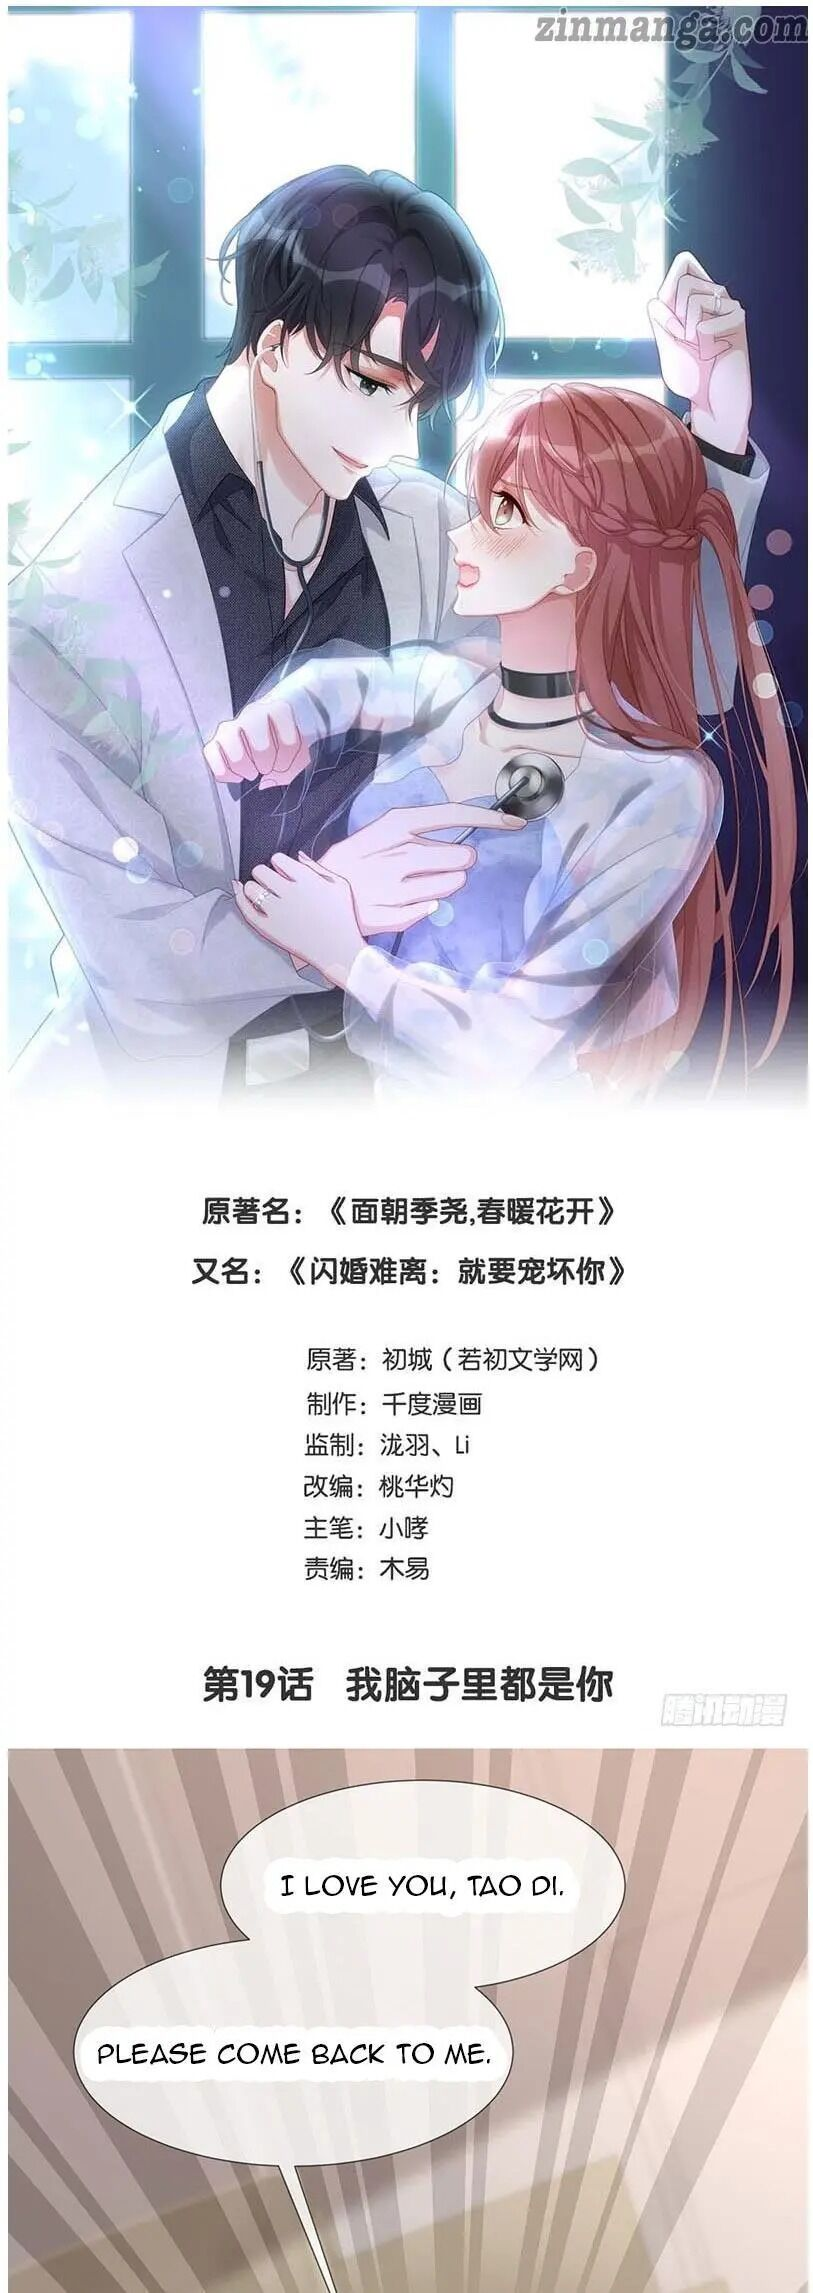 Spoil You - chapter 19 - #1